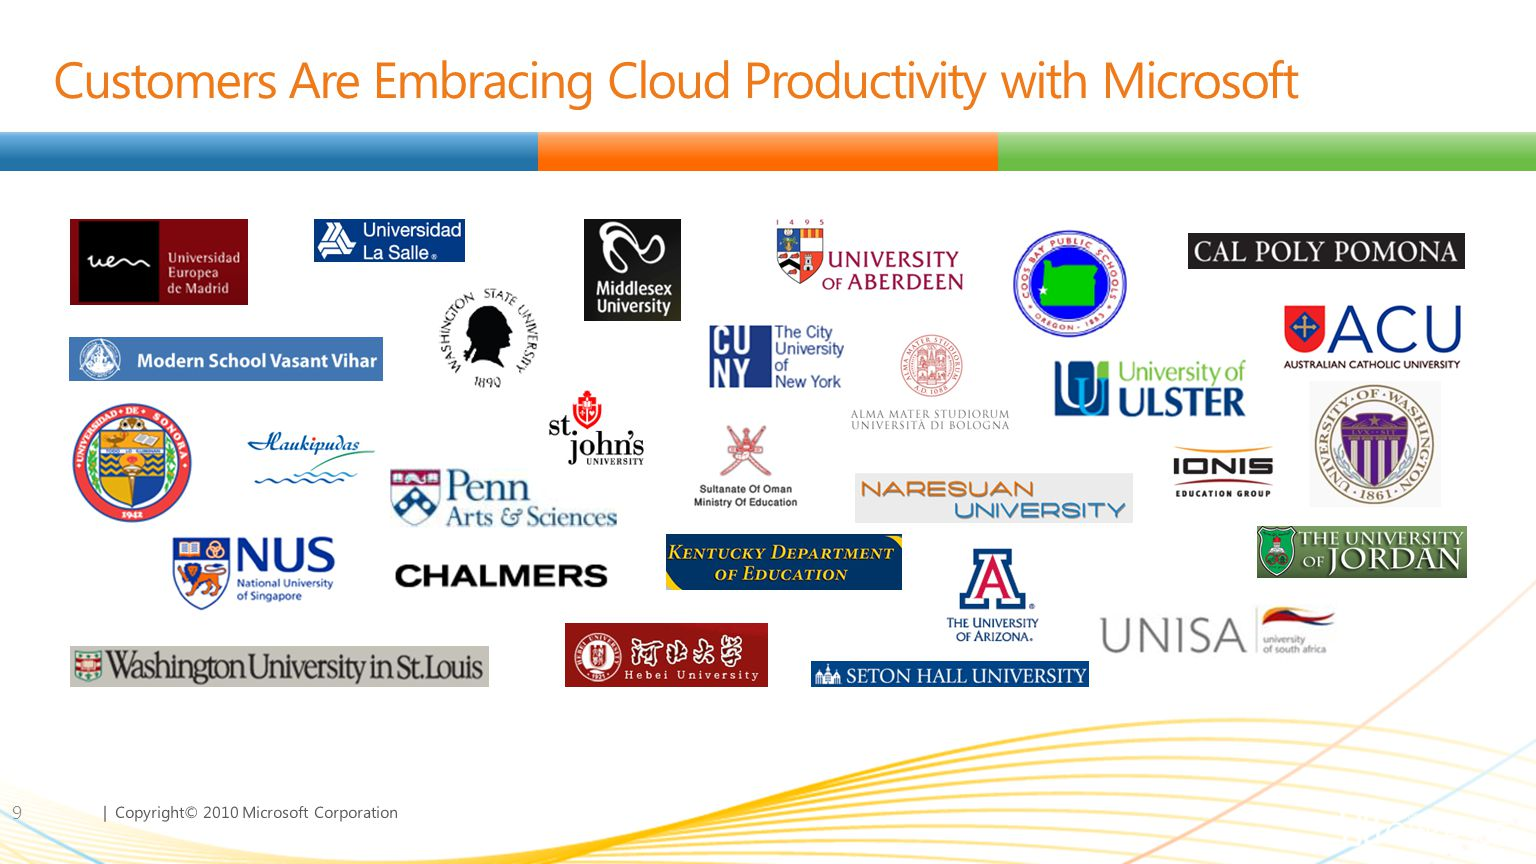 Customers Are Embracing Cloud Productivity with Microsoft